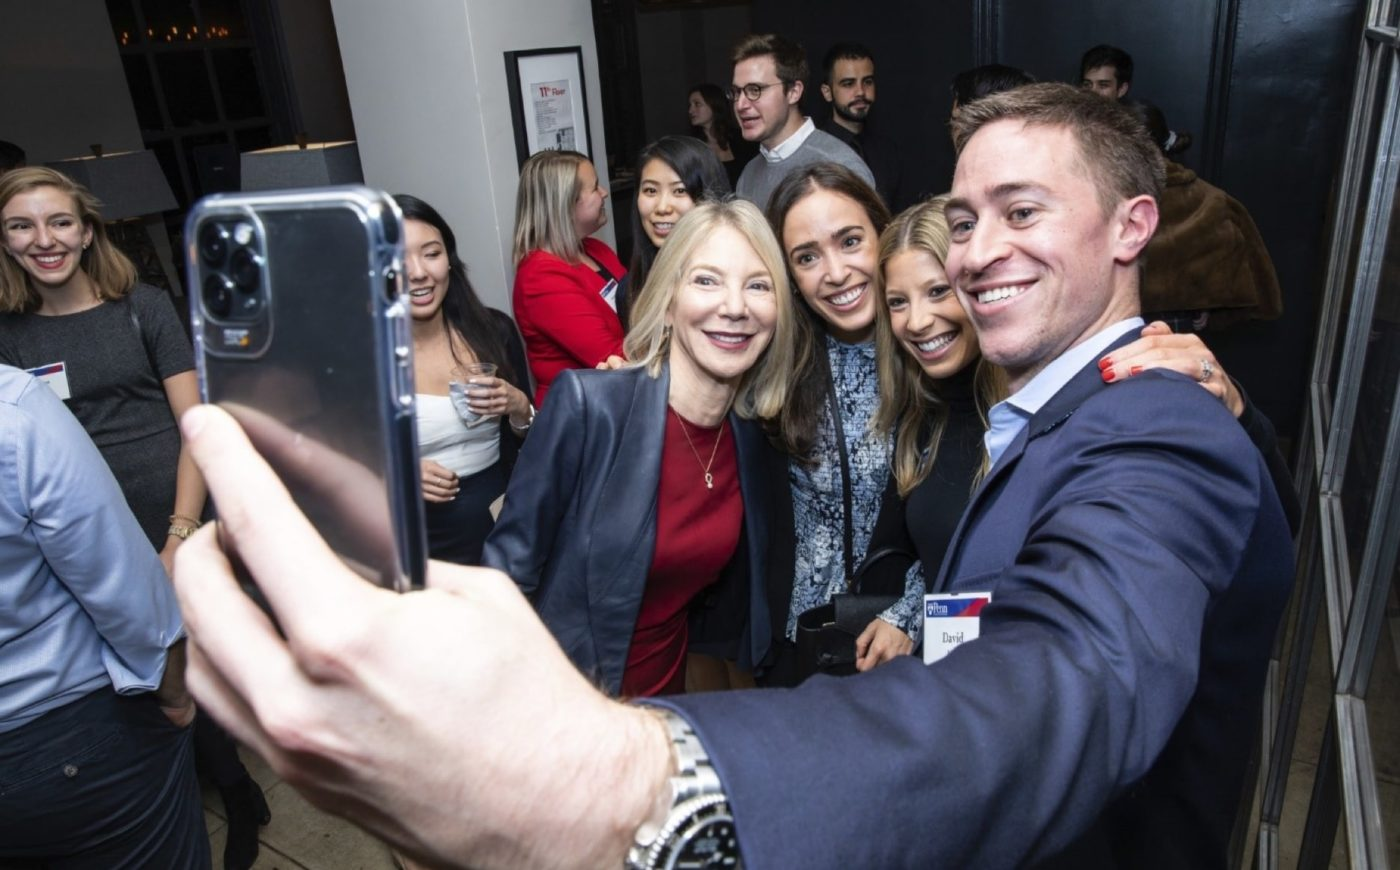 Young Alumni taking a selfie with President Amy Gutmann at NYC event